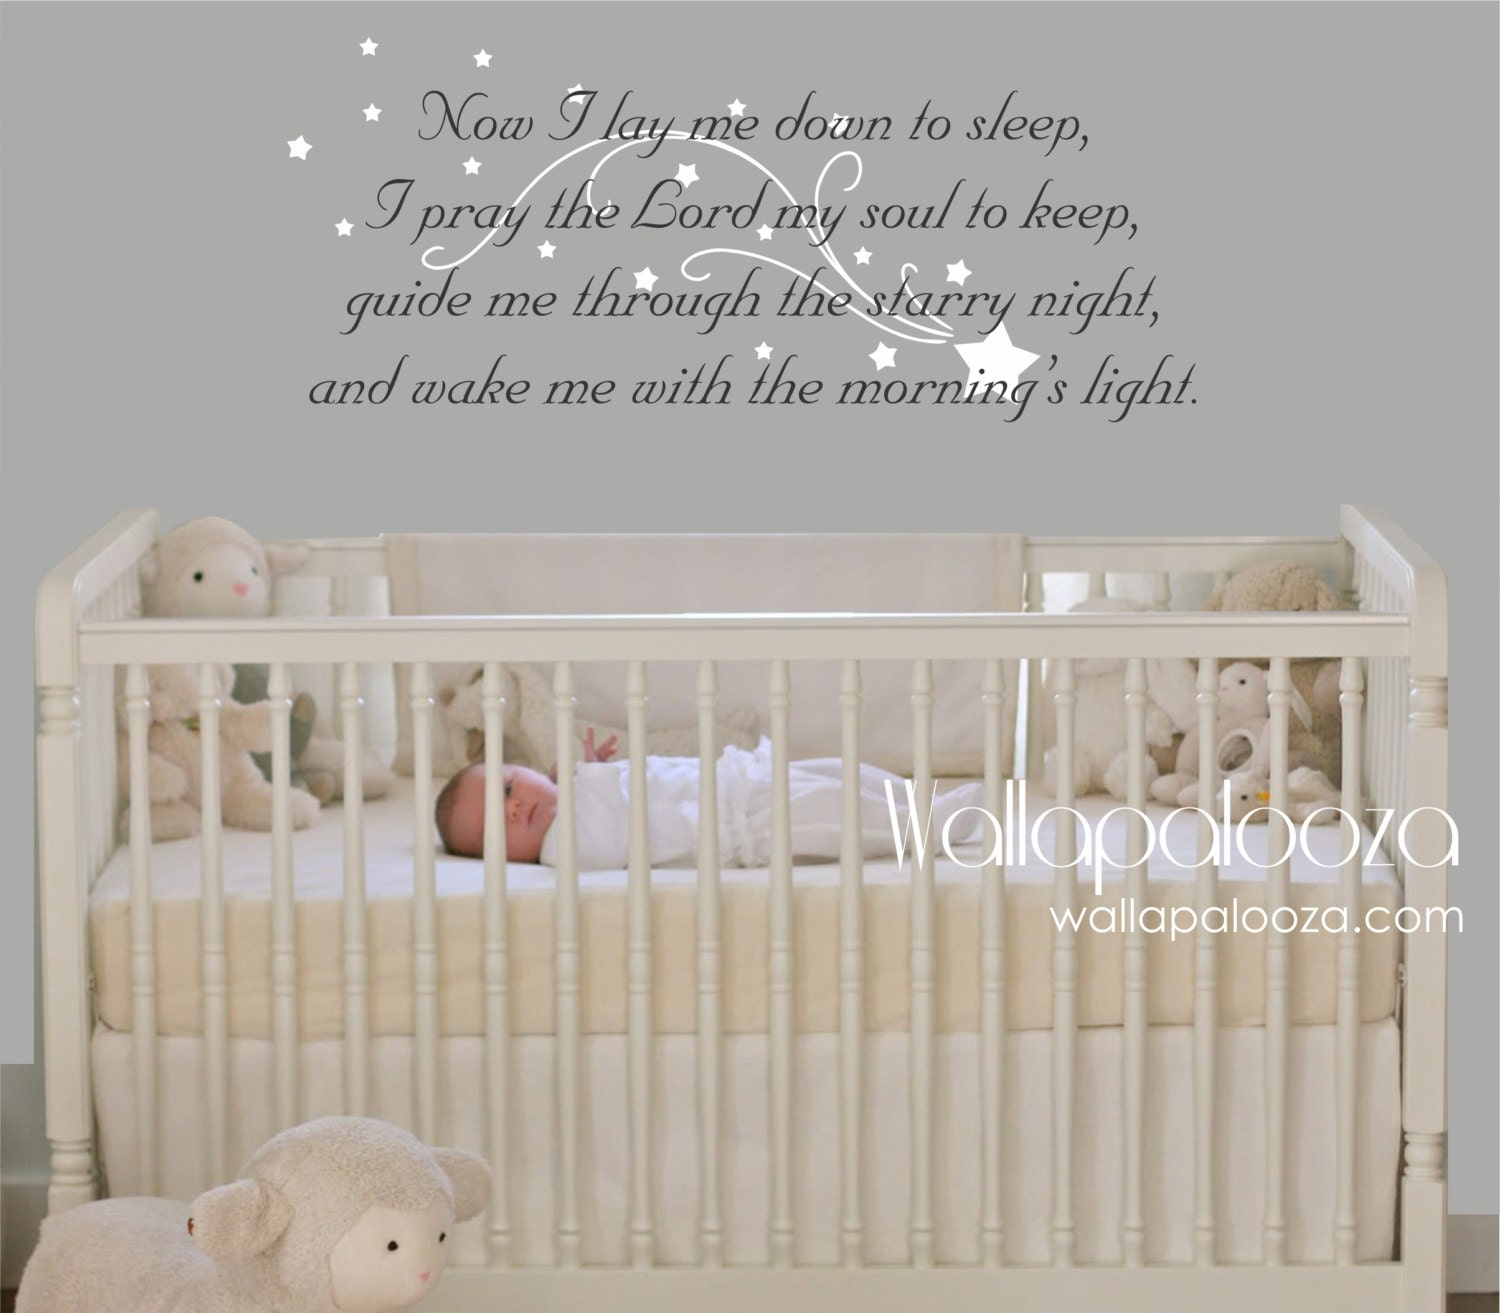 Now I Lay Me Down To Sleep Wall Decal Prayer Wall Decal - Wall decals for nursery